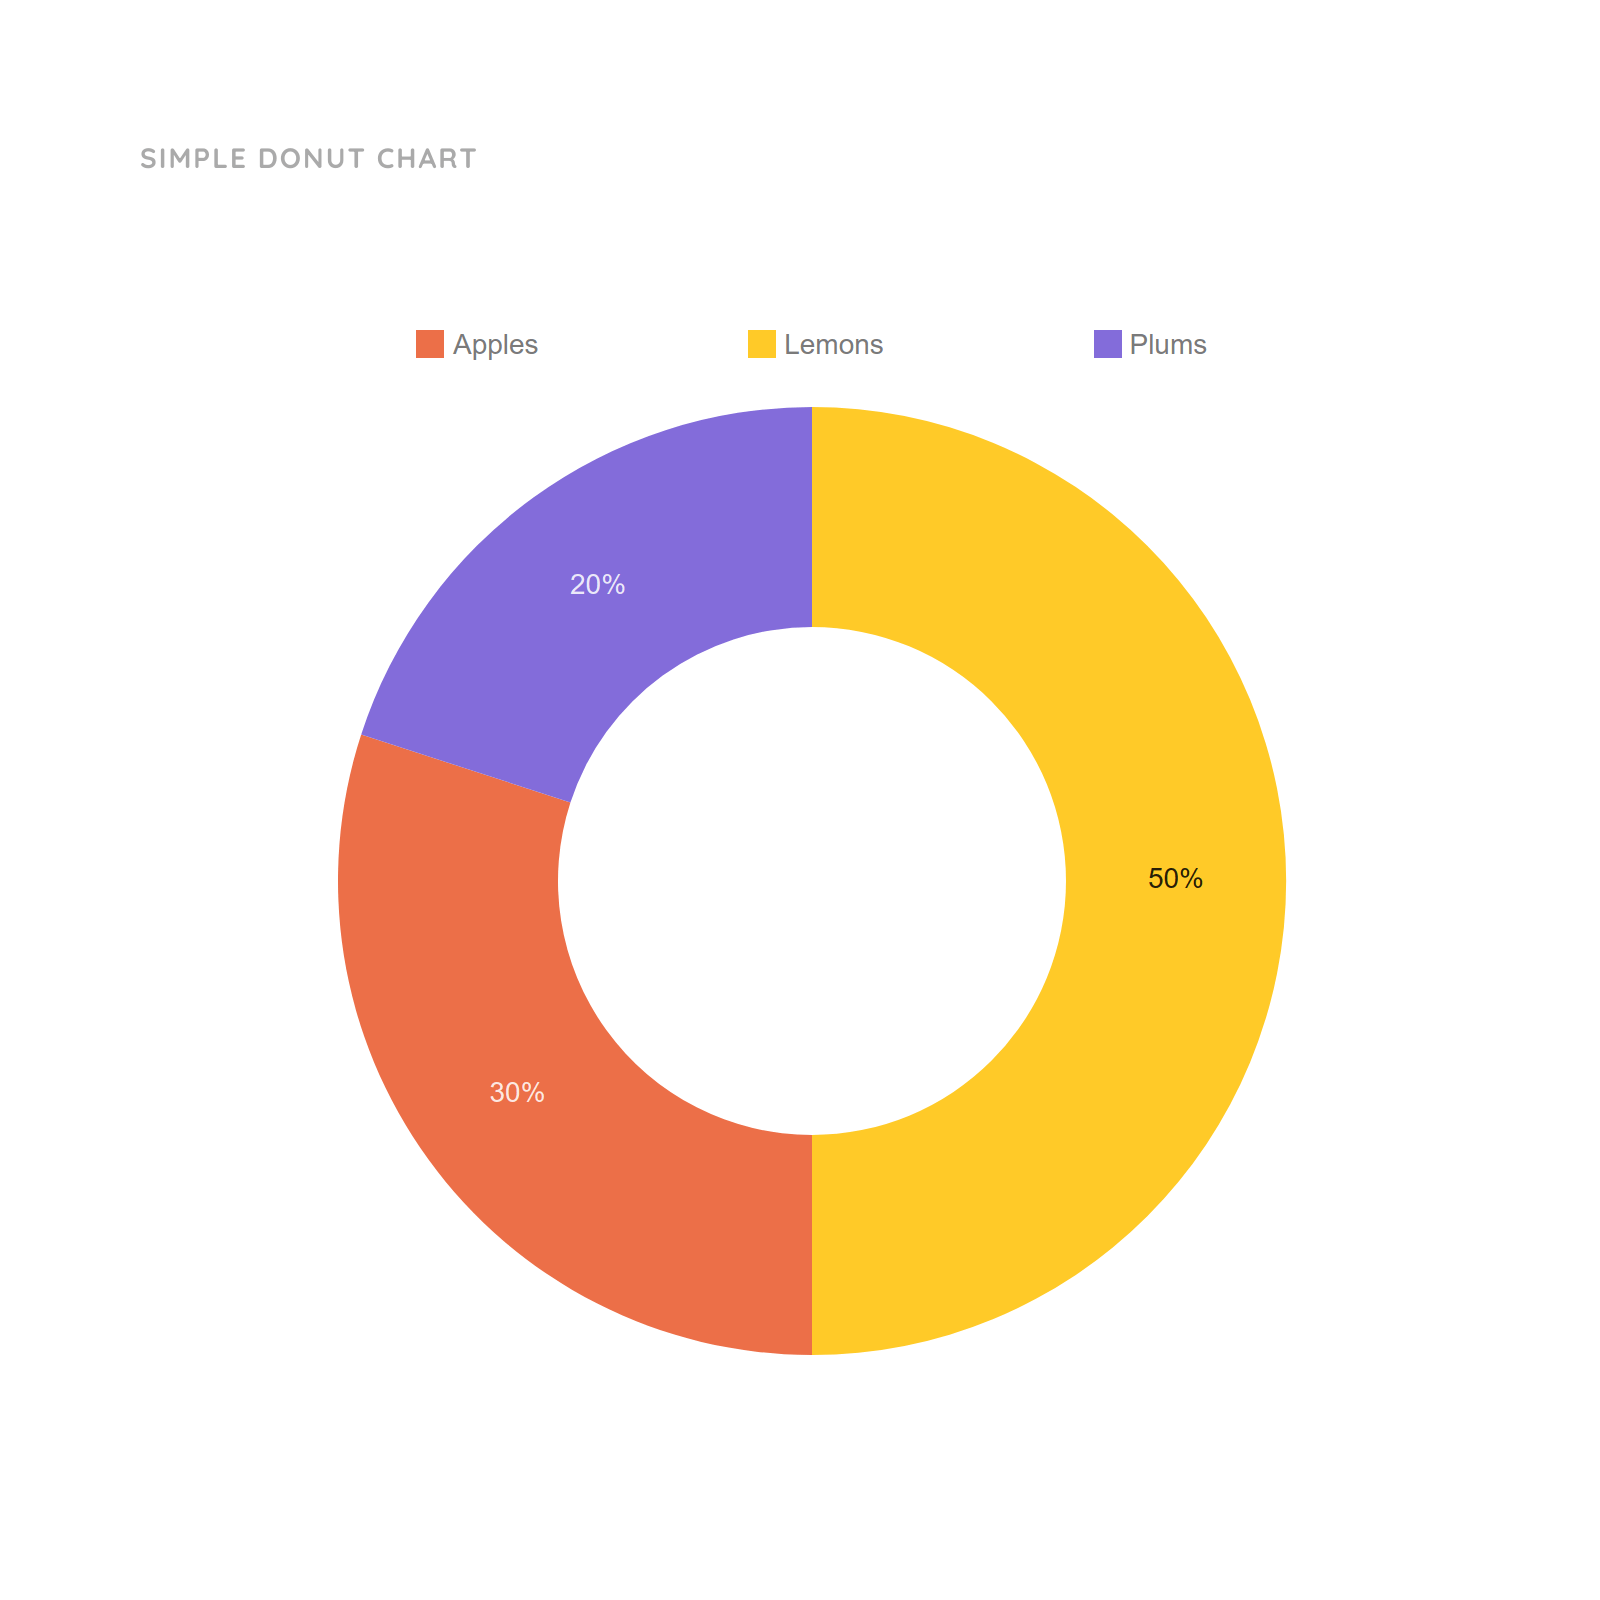 Simple Donut Chart